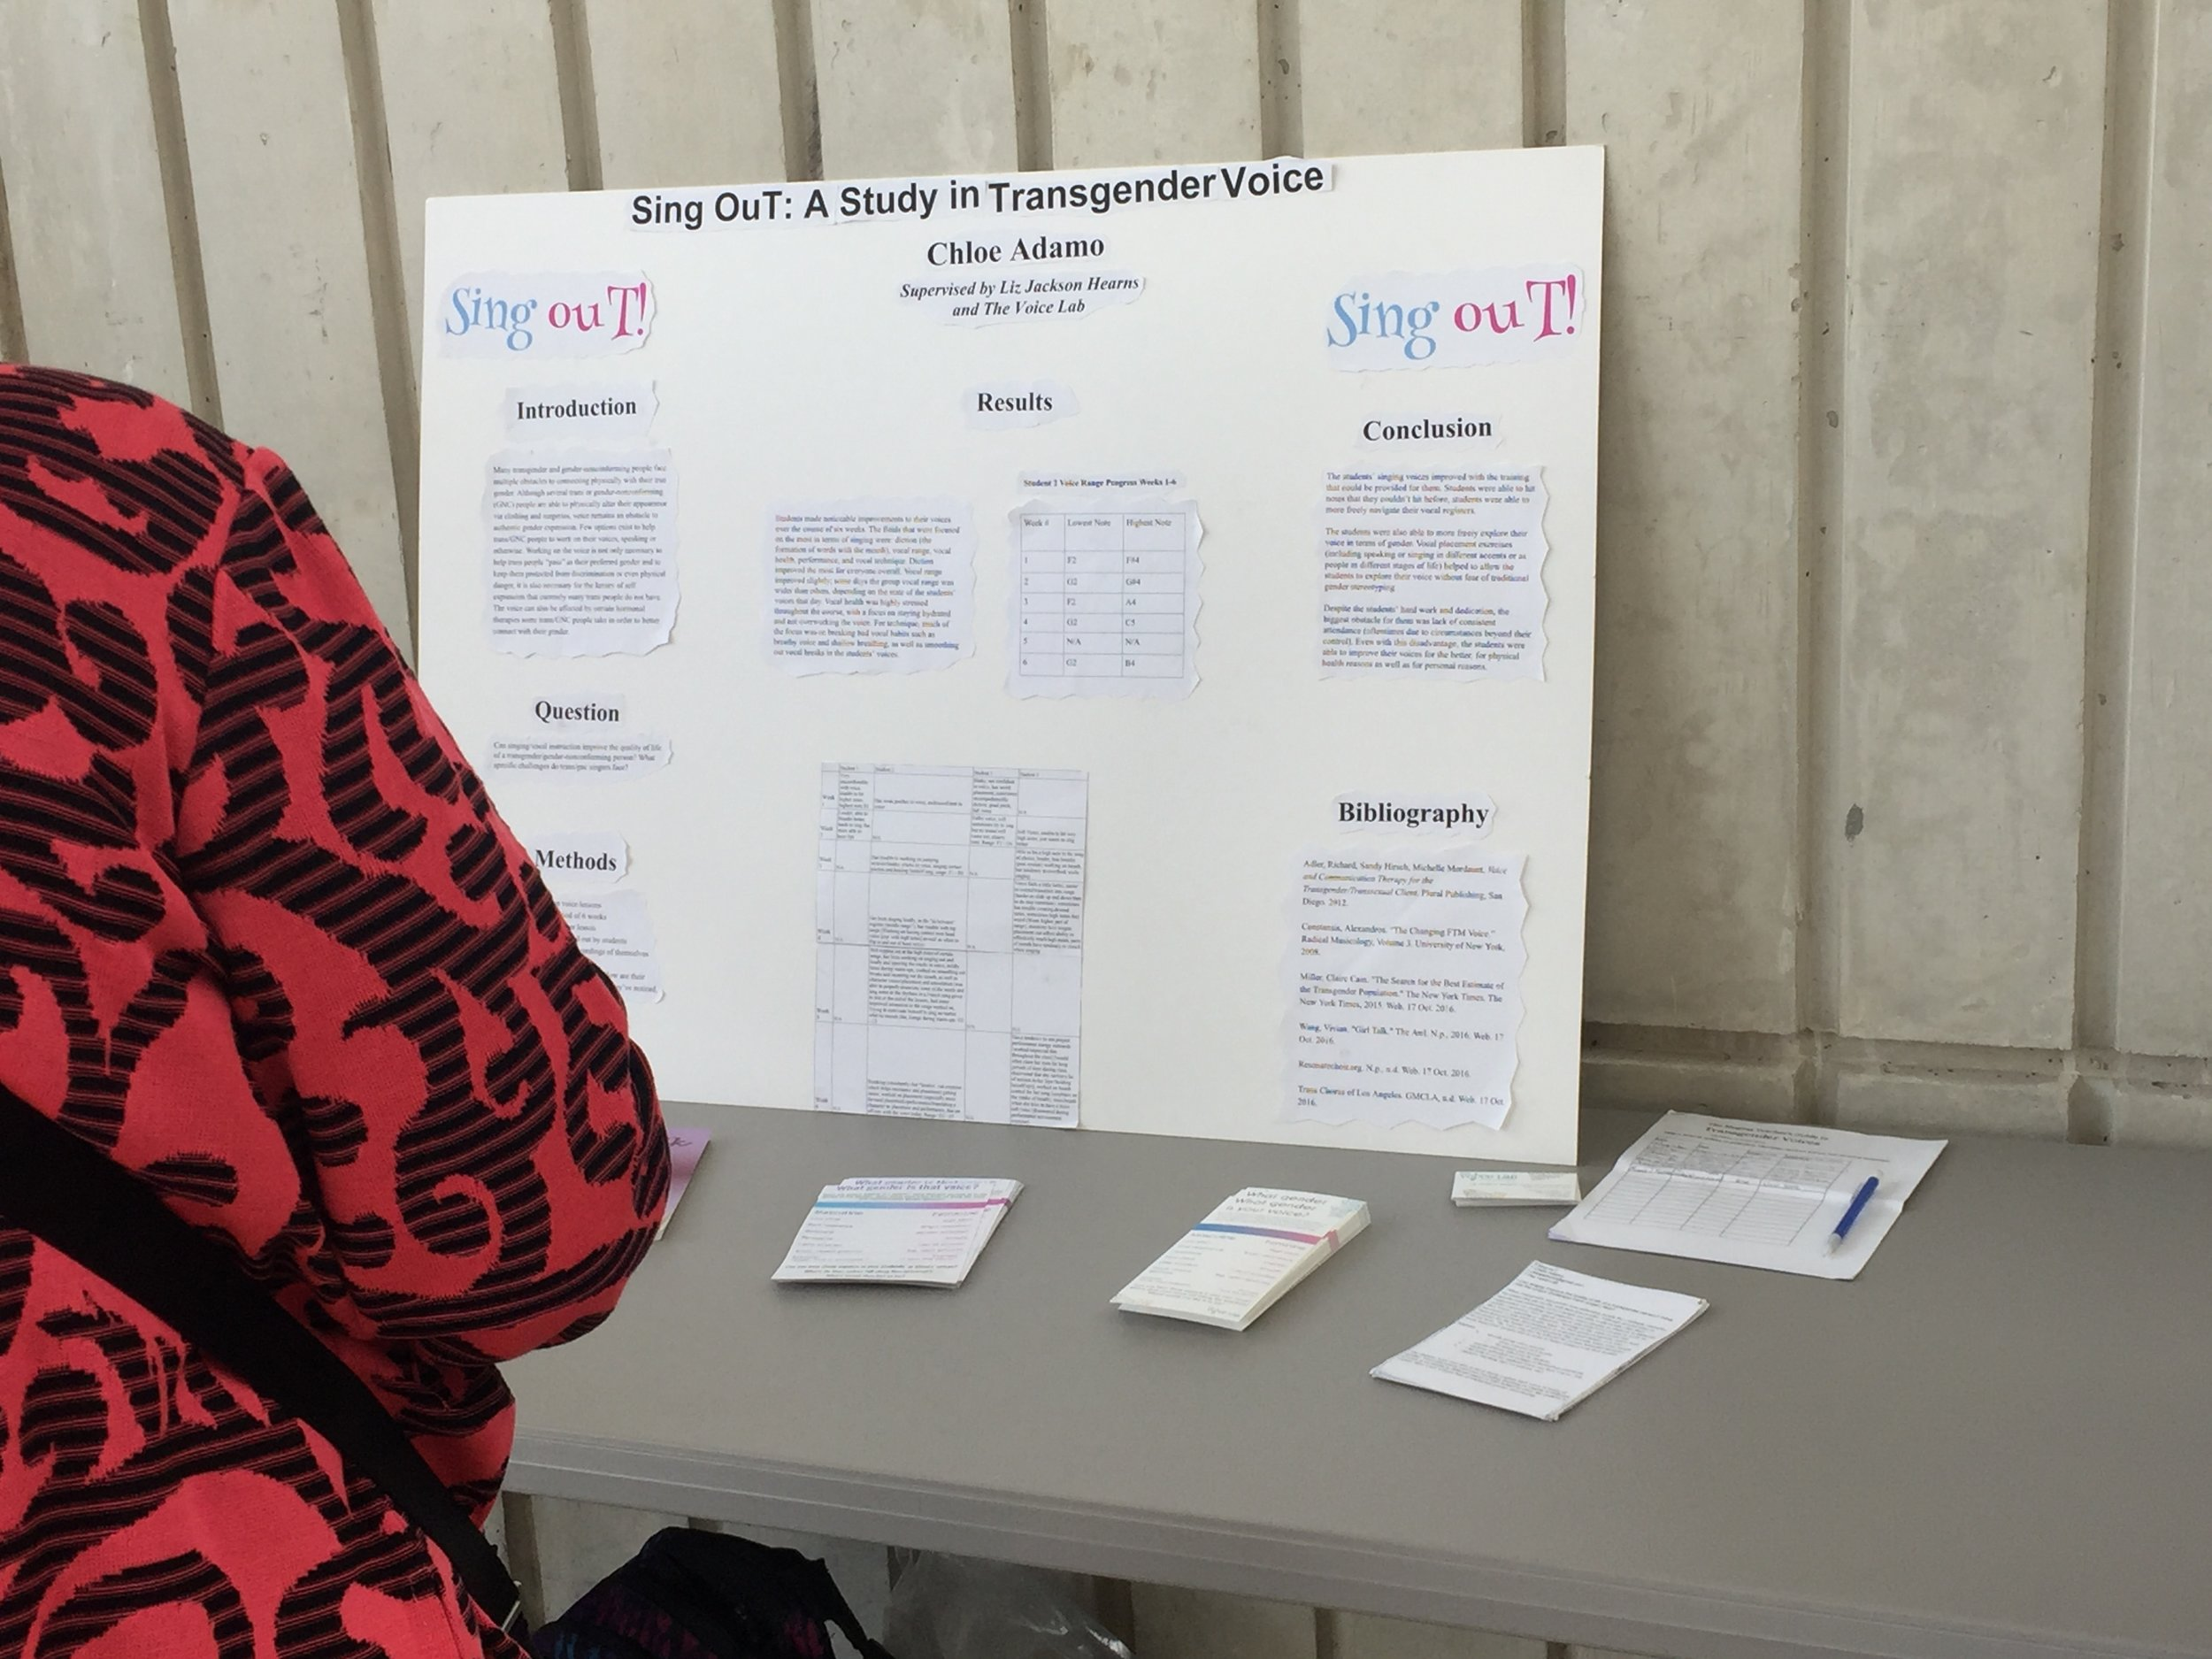 2016 Poster Session Sing OuT - A Study in Transgender Voice.jpeg